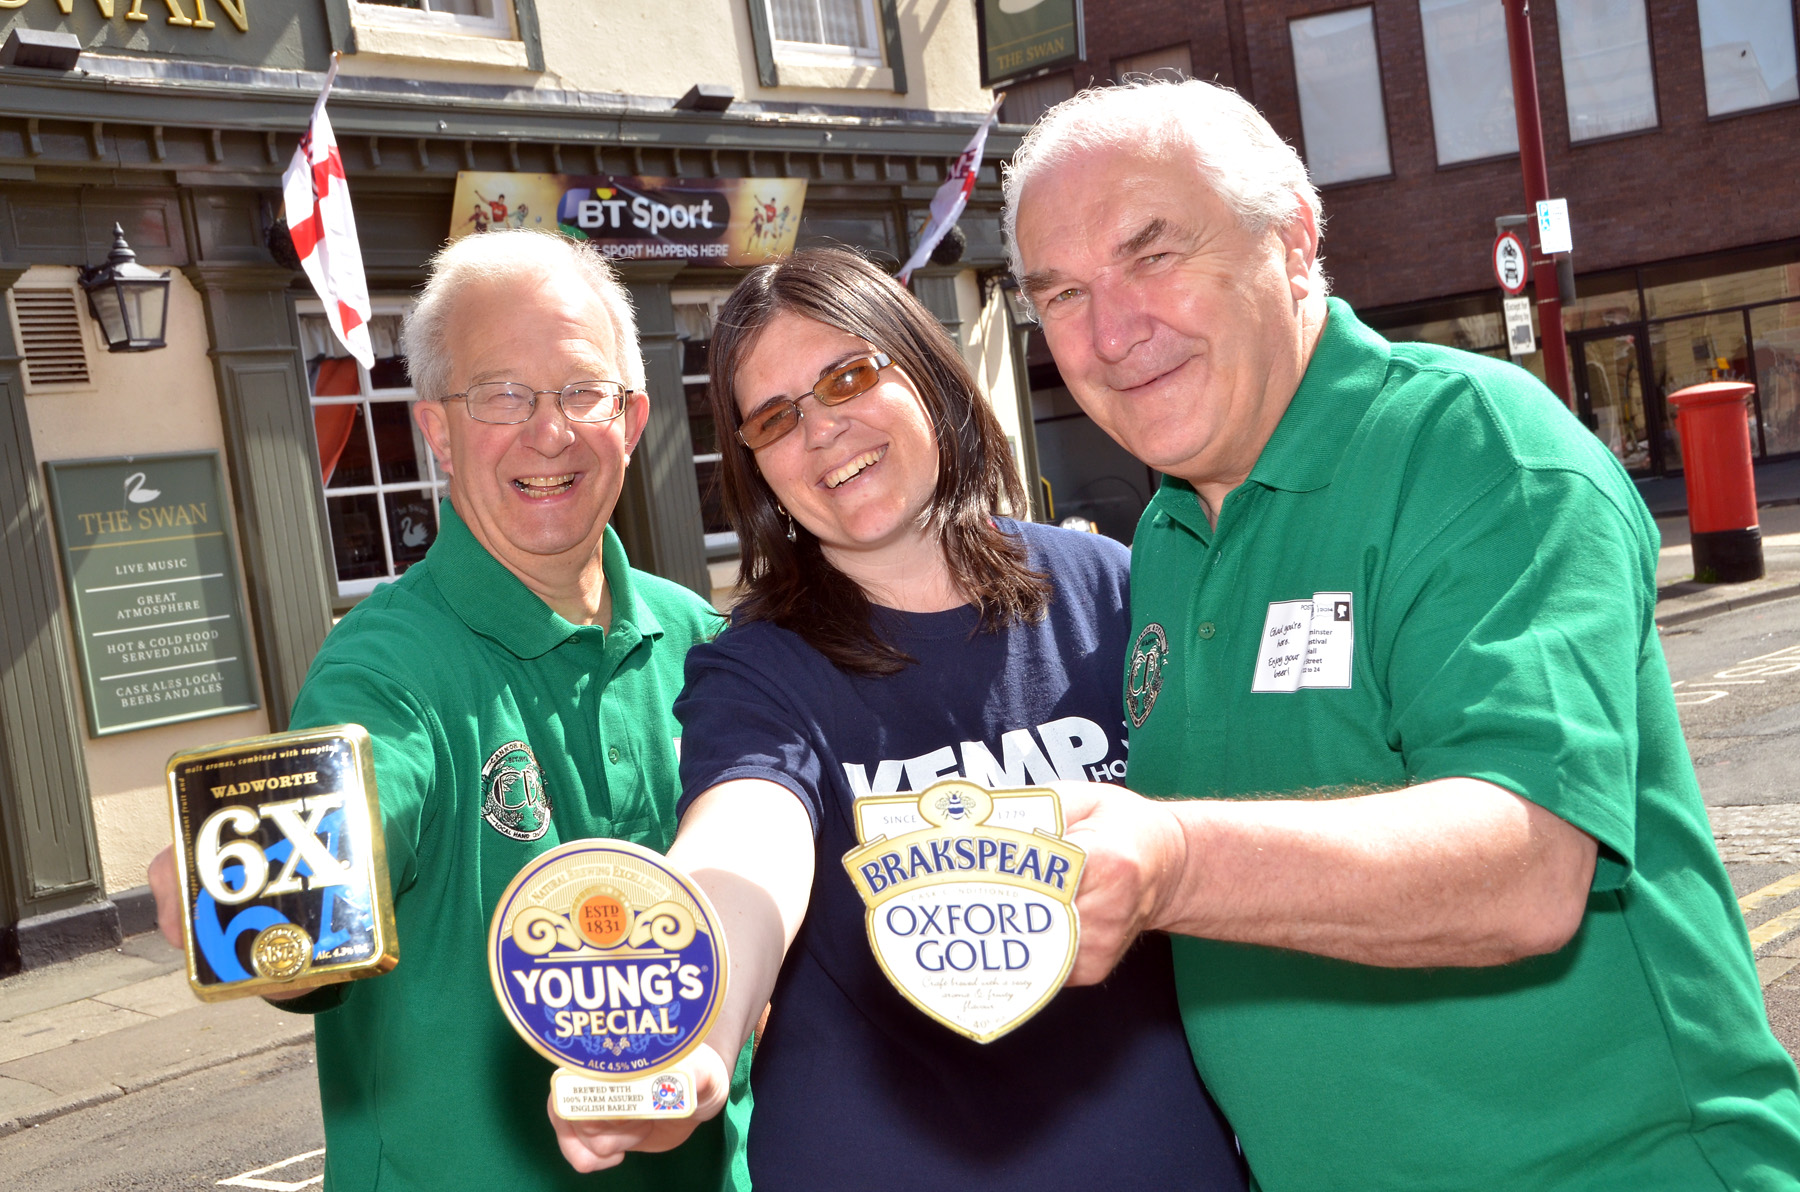 FUNDRAISERS: Phil Wright and Pete Doncaster of Wyre Forest CAMRA with Debbie Broomfield of Kemp Hospice with pump clips that will be sold to raise funds. Photo COLIN HILL.